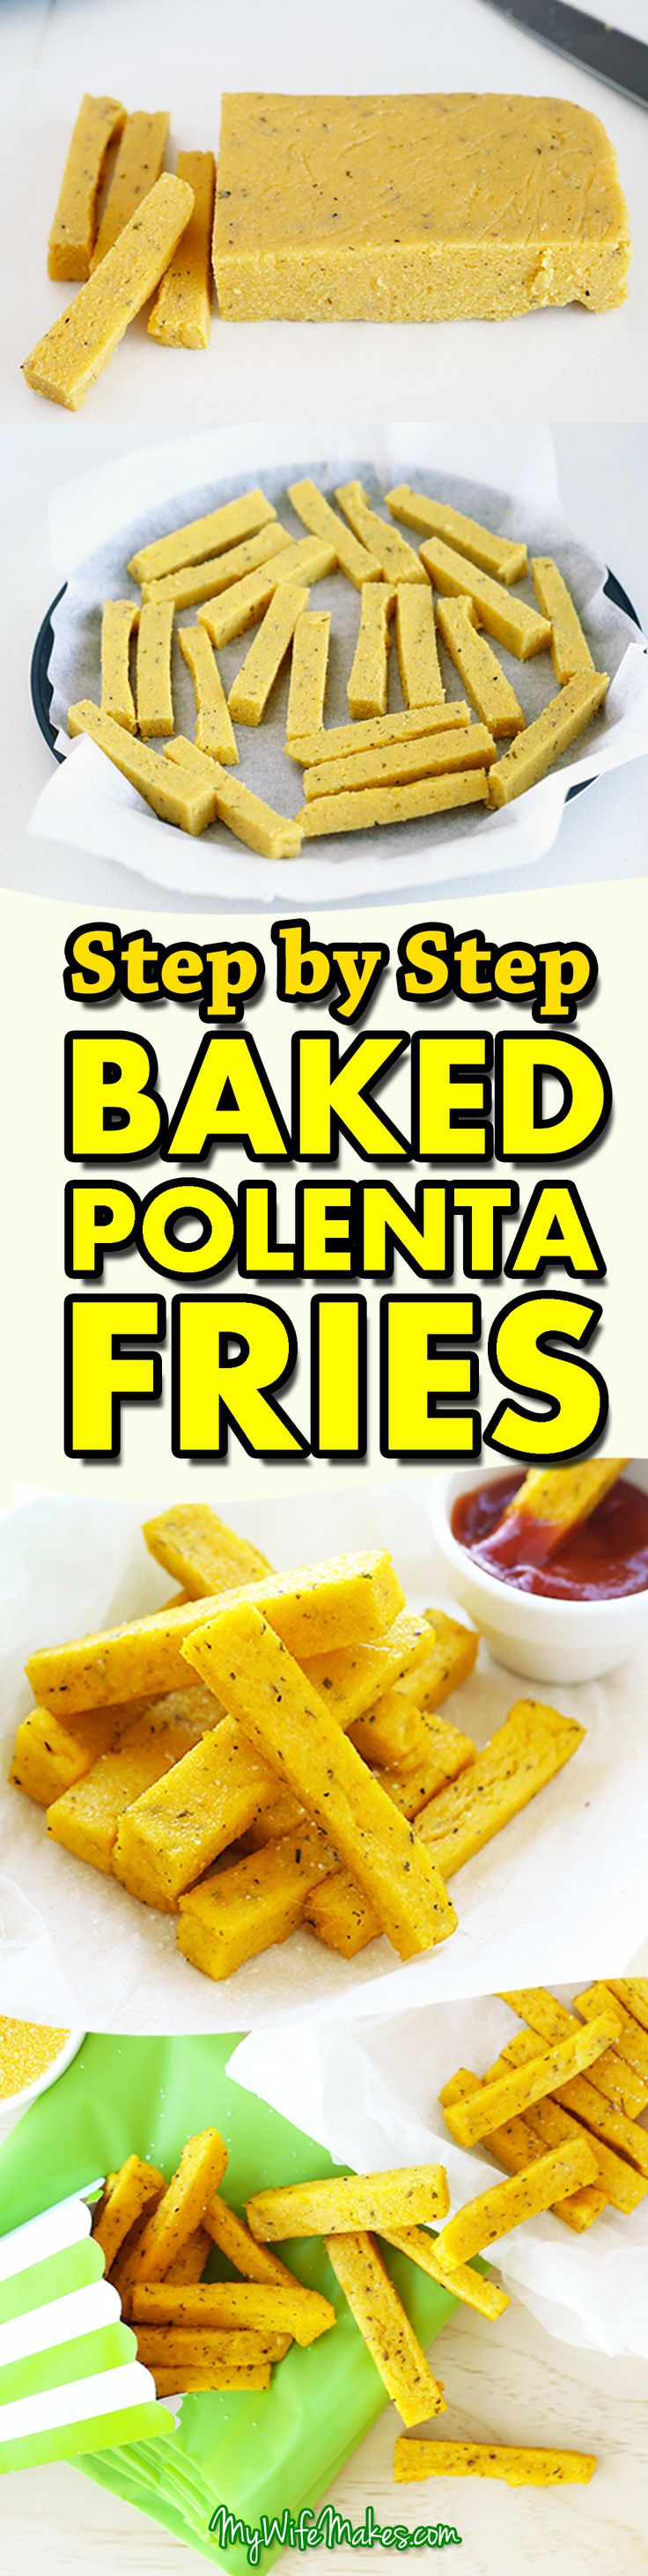 Easy Baked Polenta Fries / Chips Recipe - healthy, vegan, seasoned with dried mixed herbs, nutritional yeast, garlic & onion powder, and other yummy ingredients.